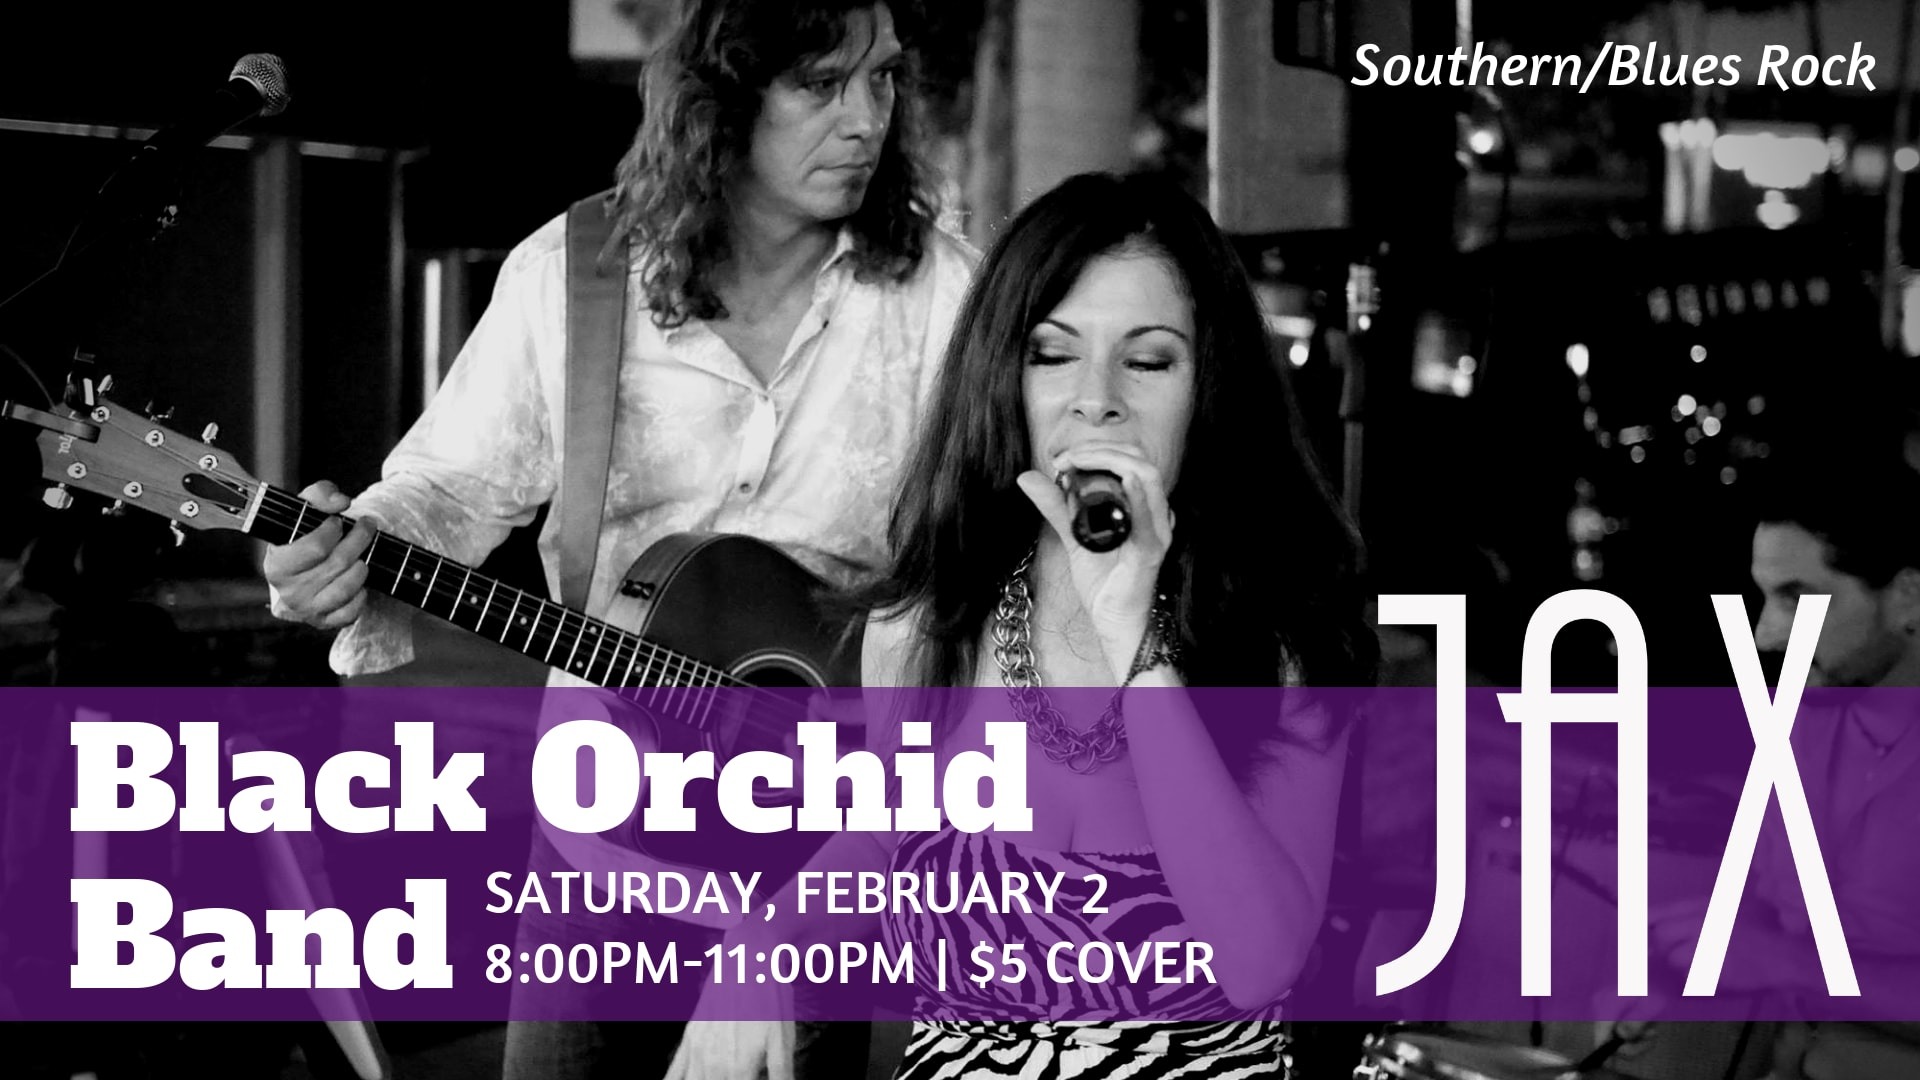 February 2 | BLACK ORCHID BAND